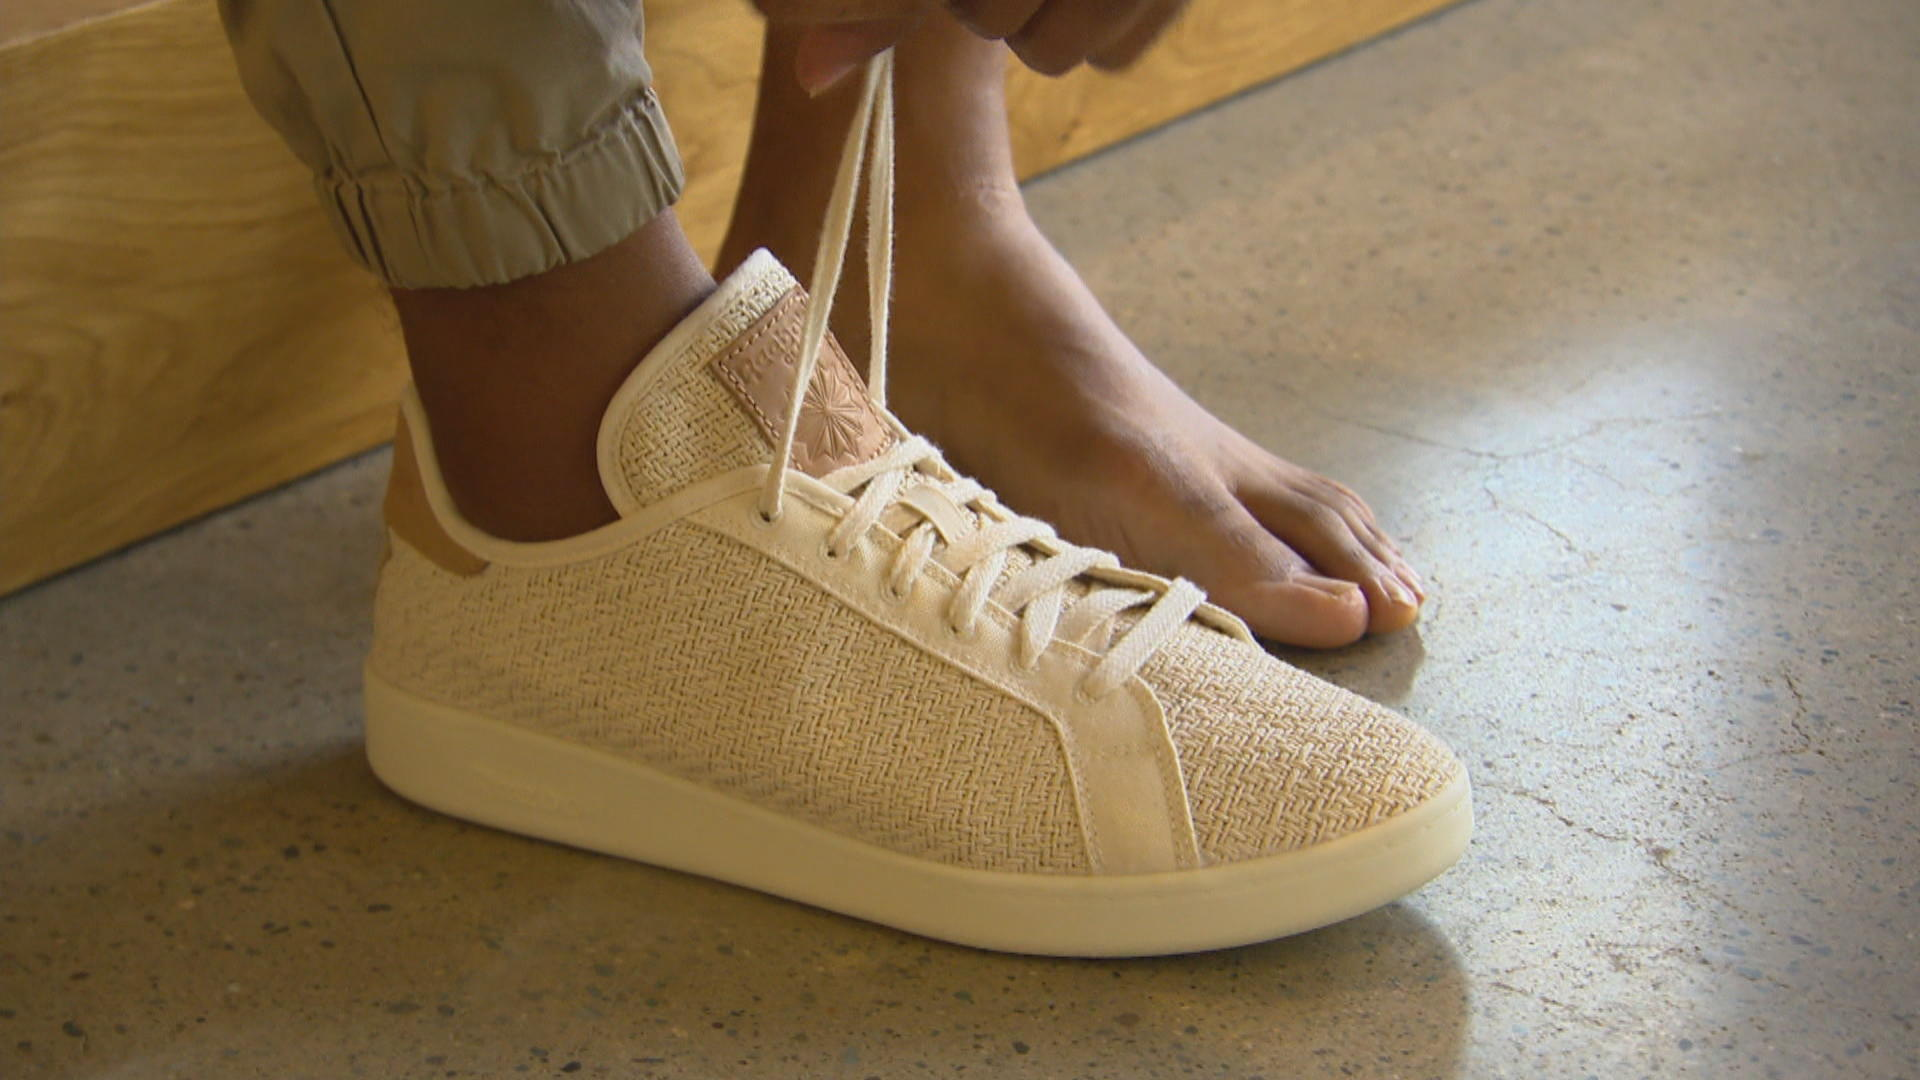 ddcc2205c1 Reebok launches sustainable sneaker made from cotton and corn - CBS News